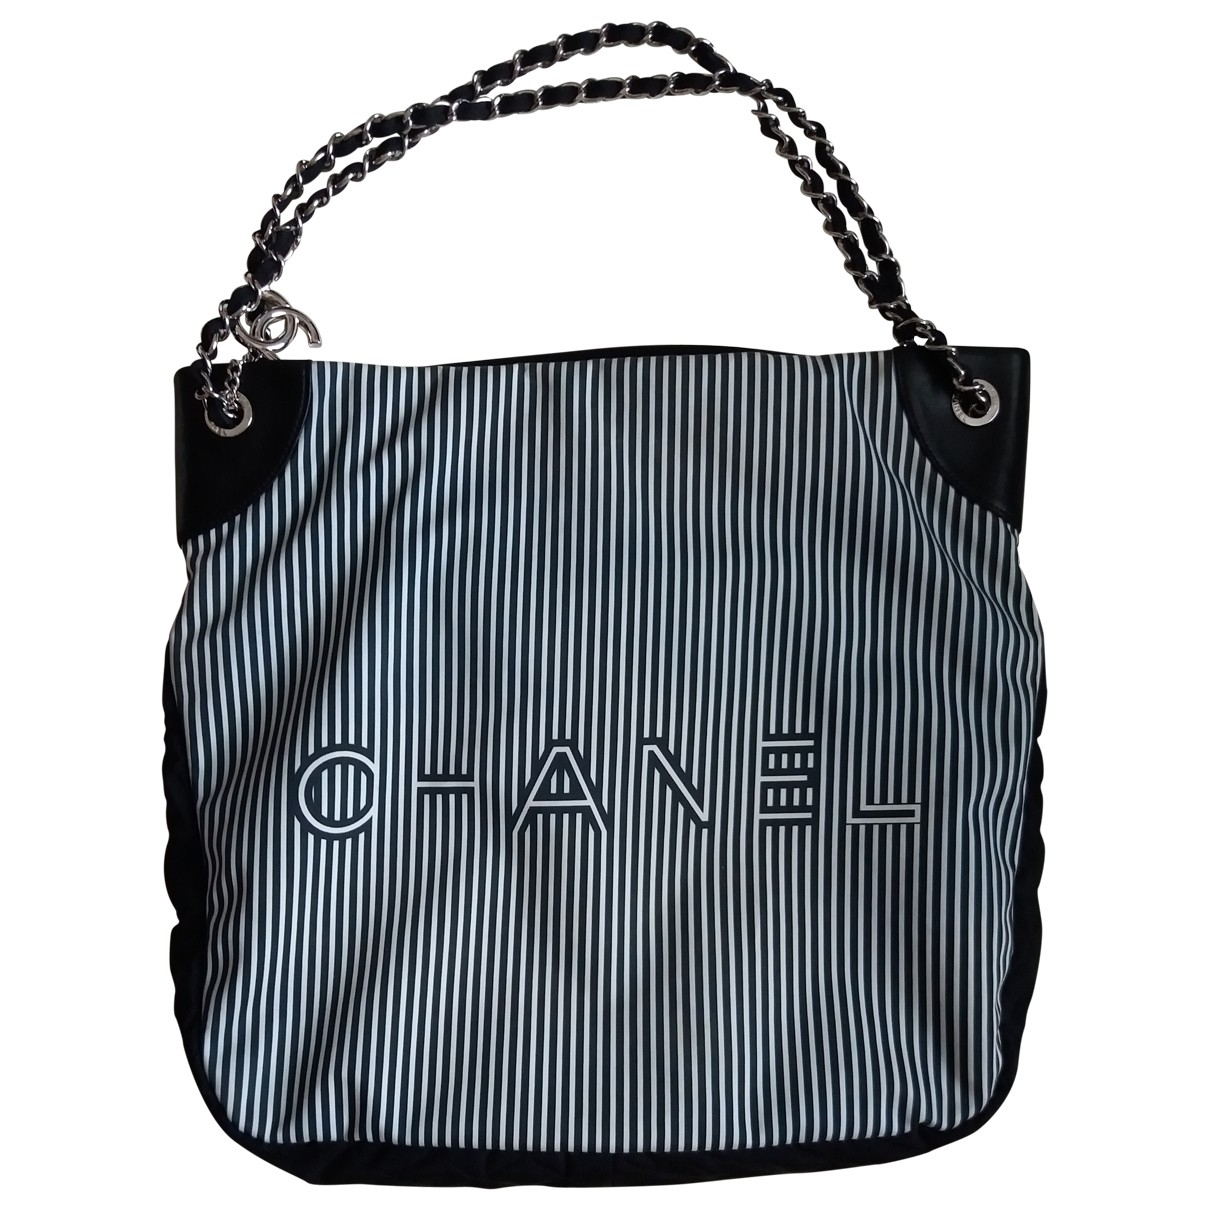 Chanel \N Cloth handbag for Women \N